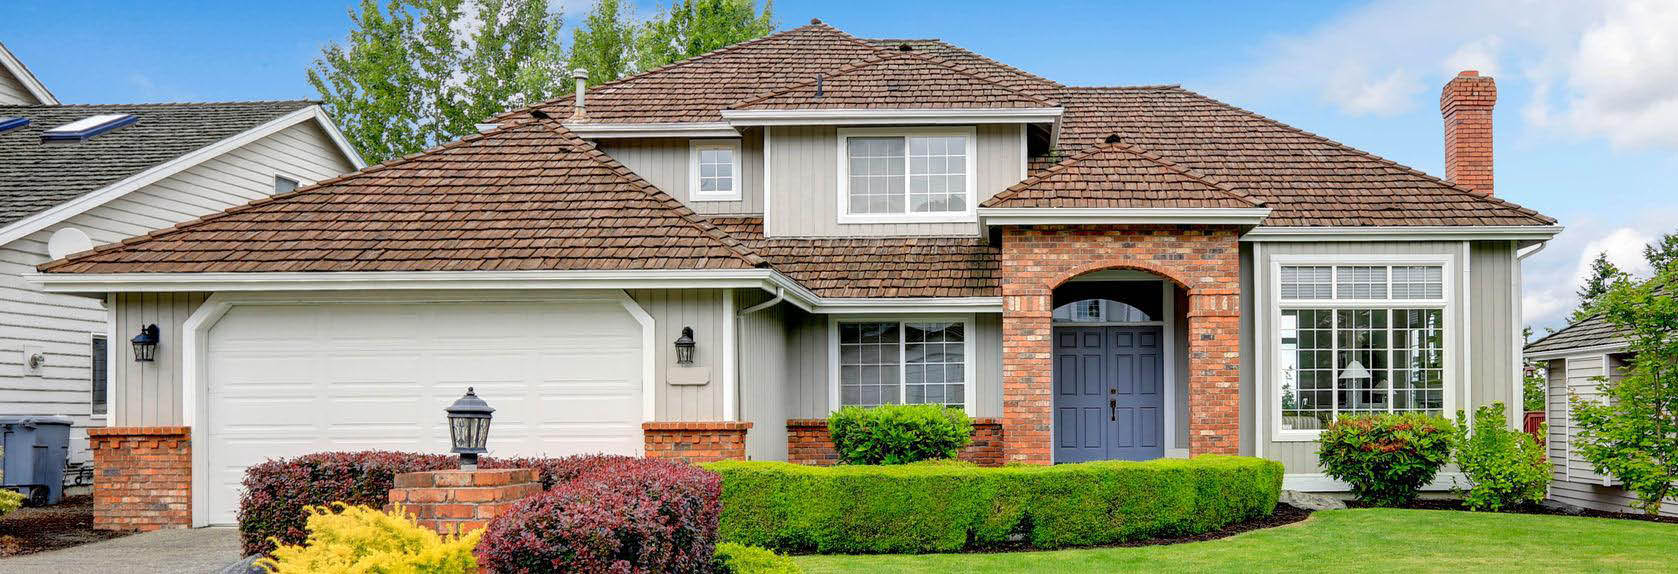 Divine Remodeling can replace your old roof to upgrade your home banner